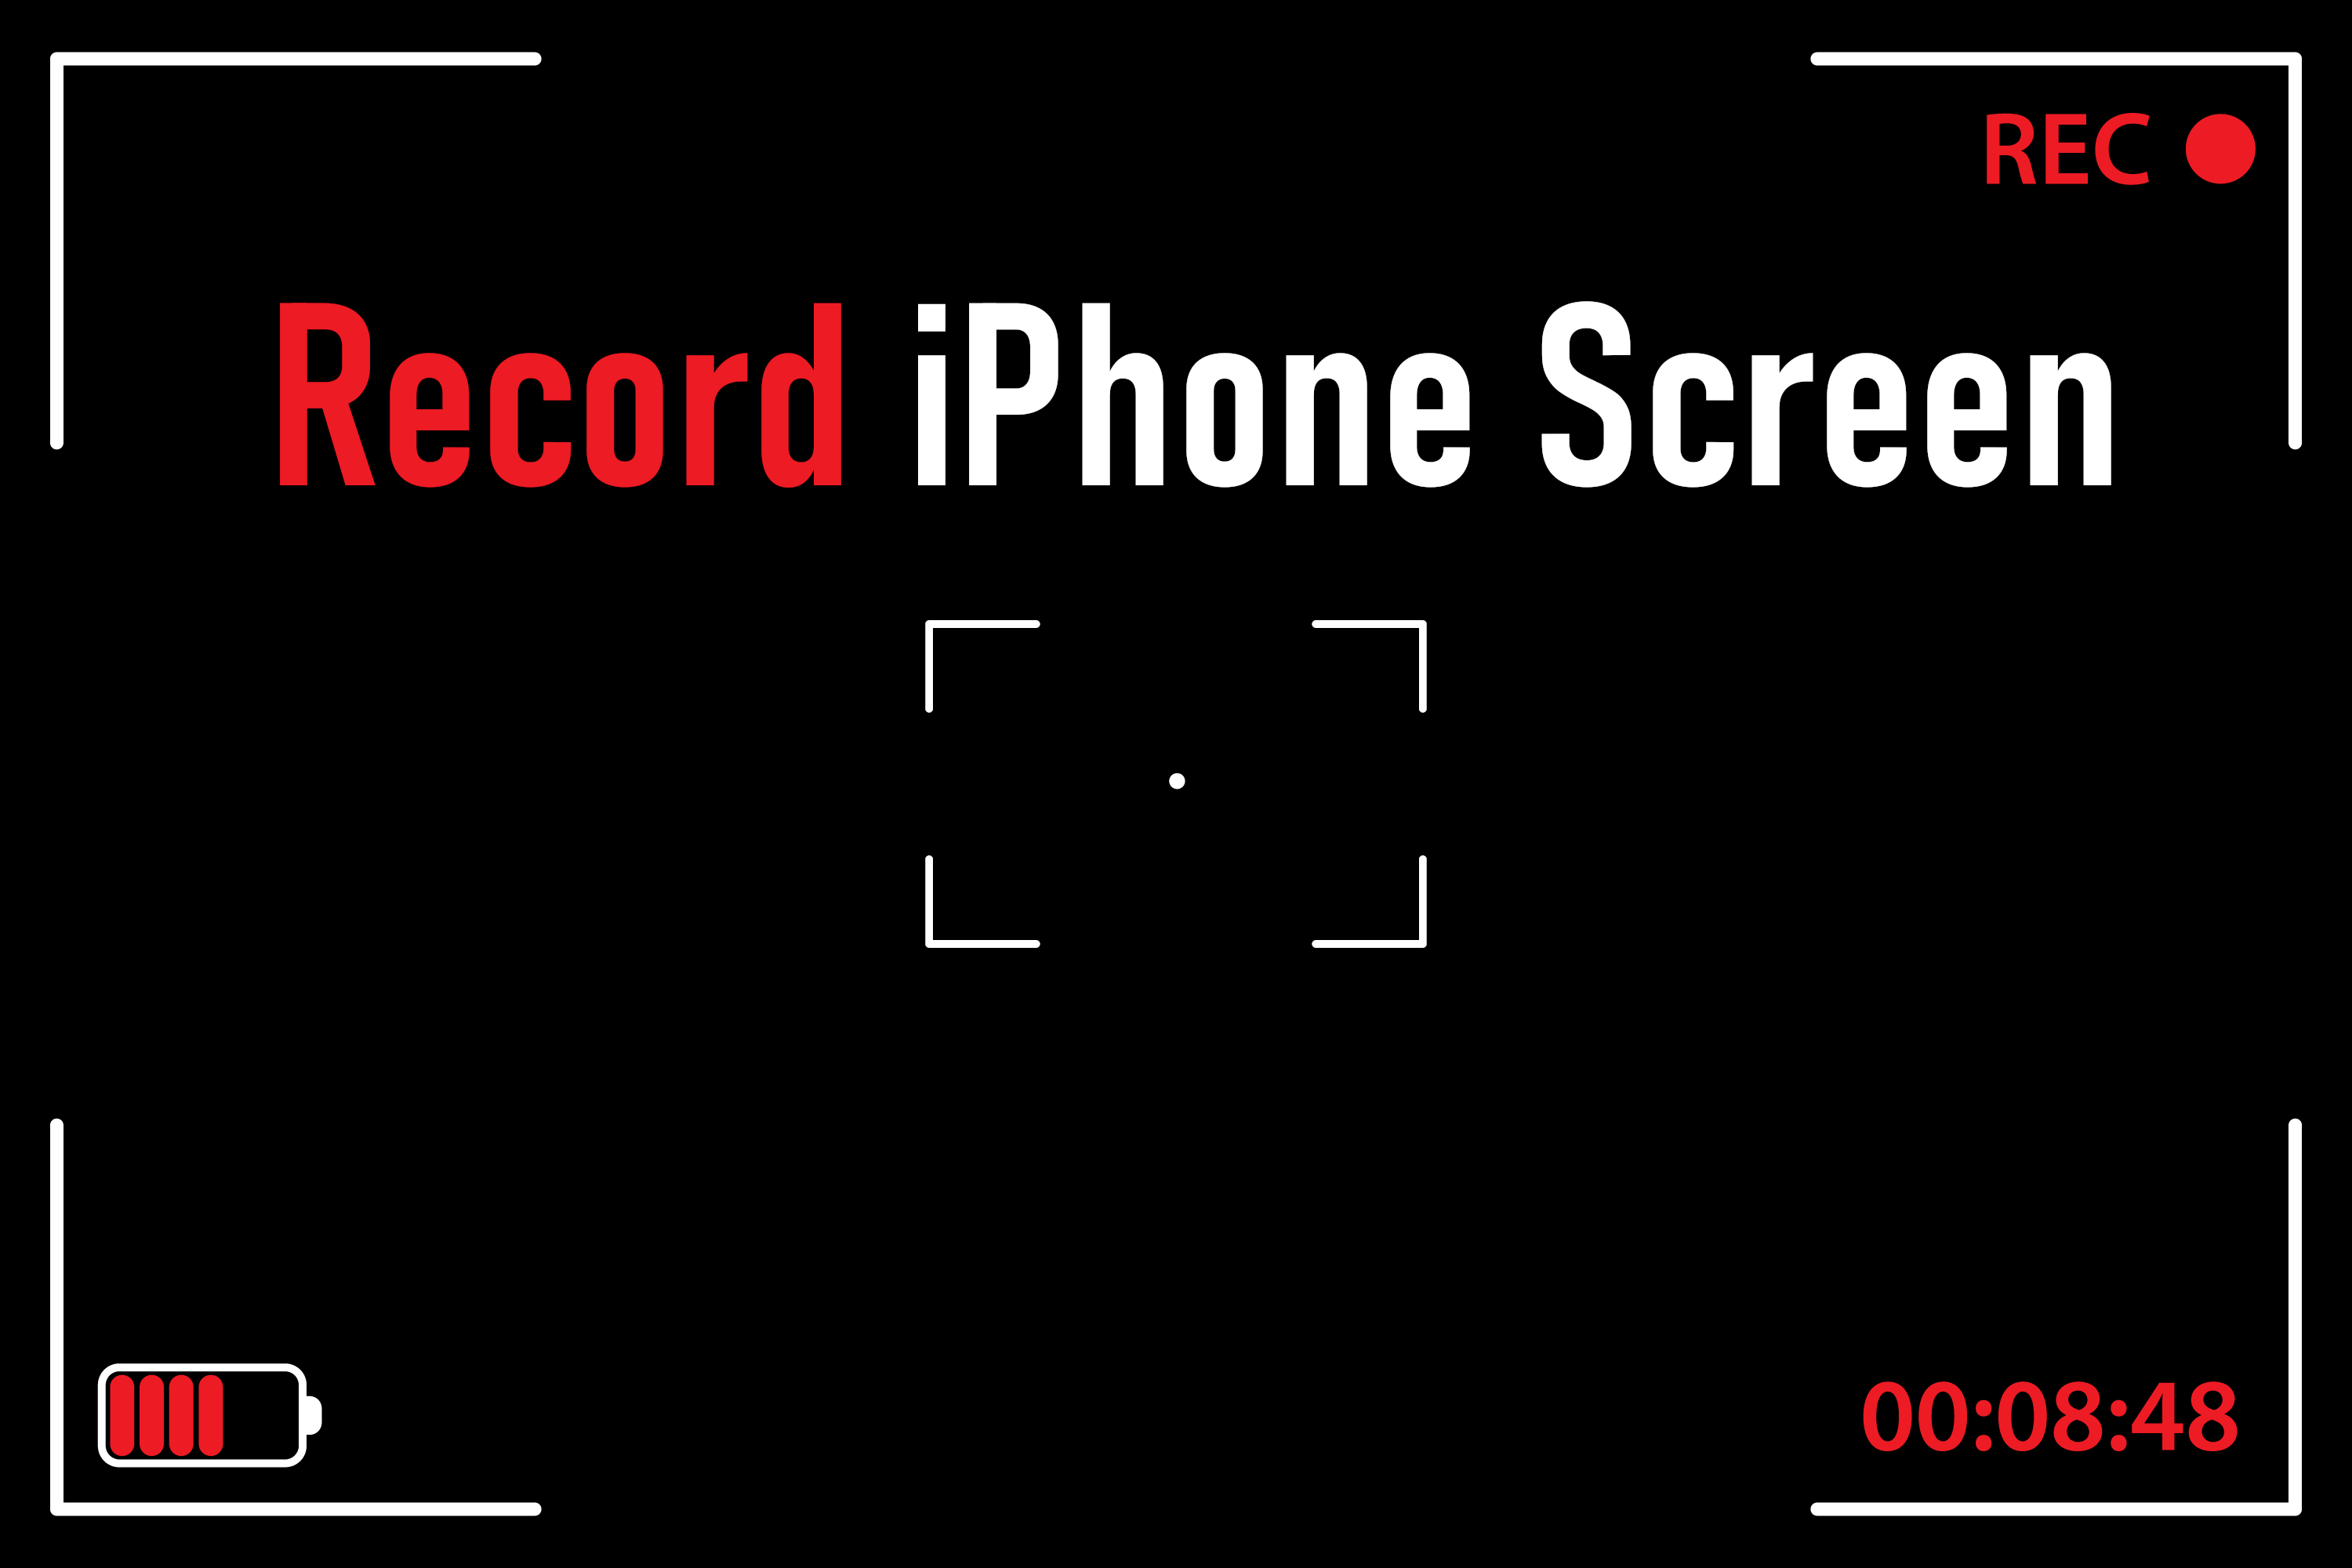 Recording Screen iPhone